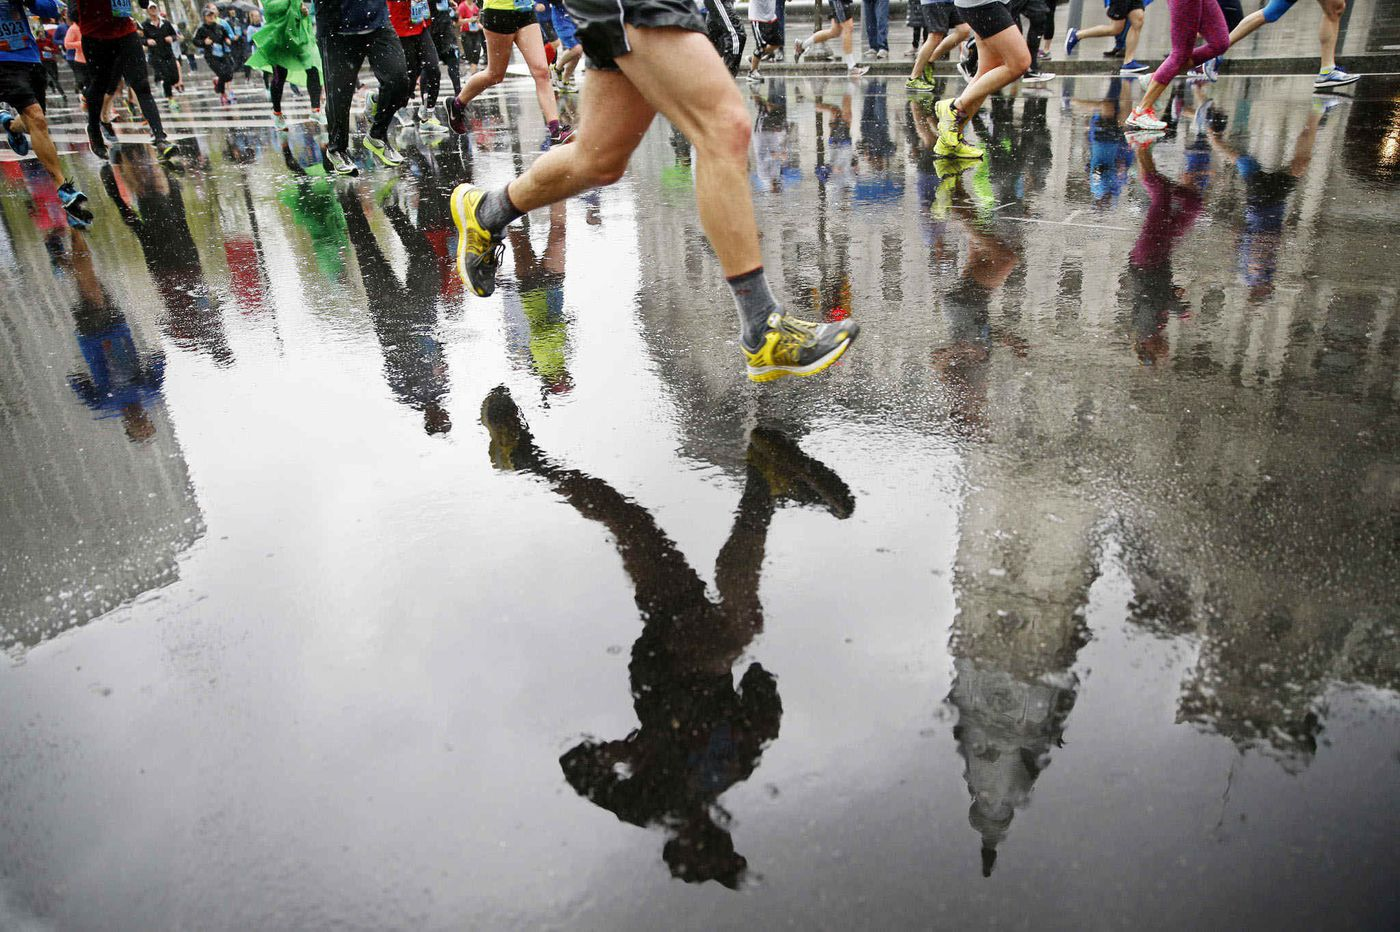 Broad Street Run weather forecast: Oh no!